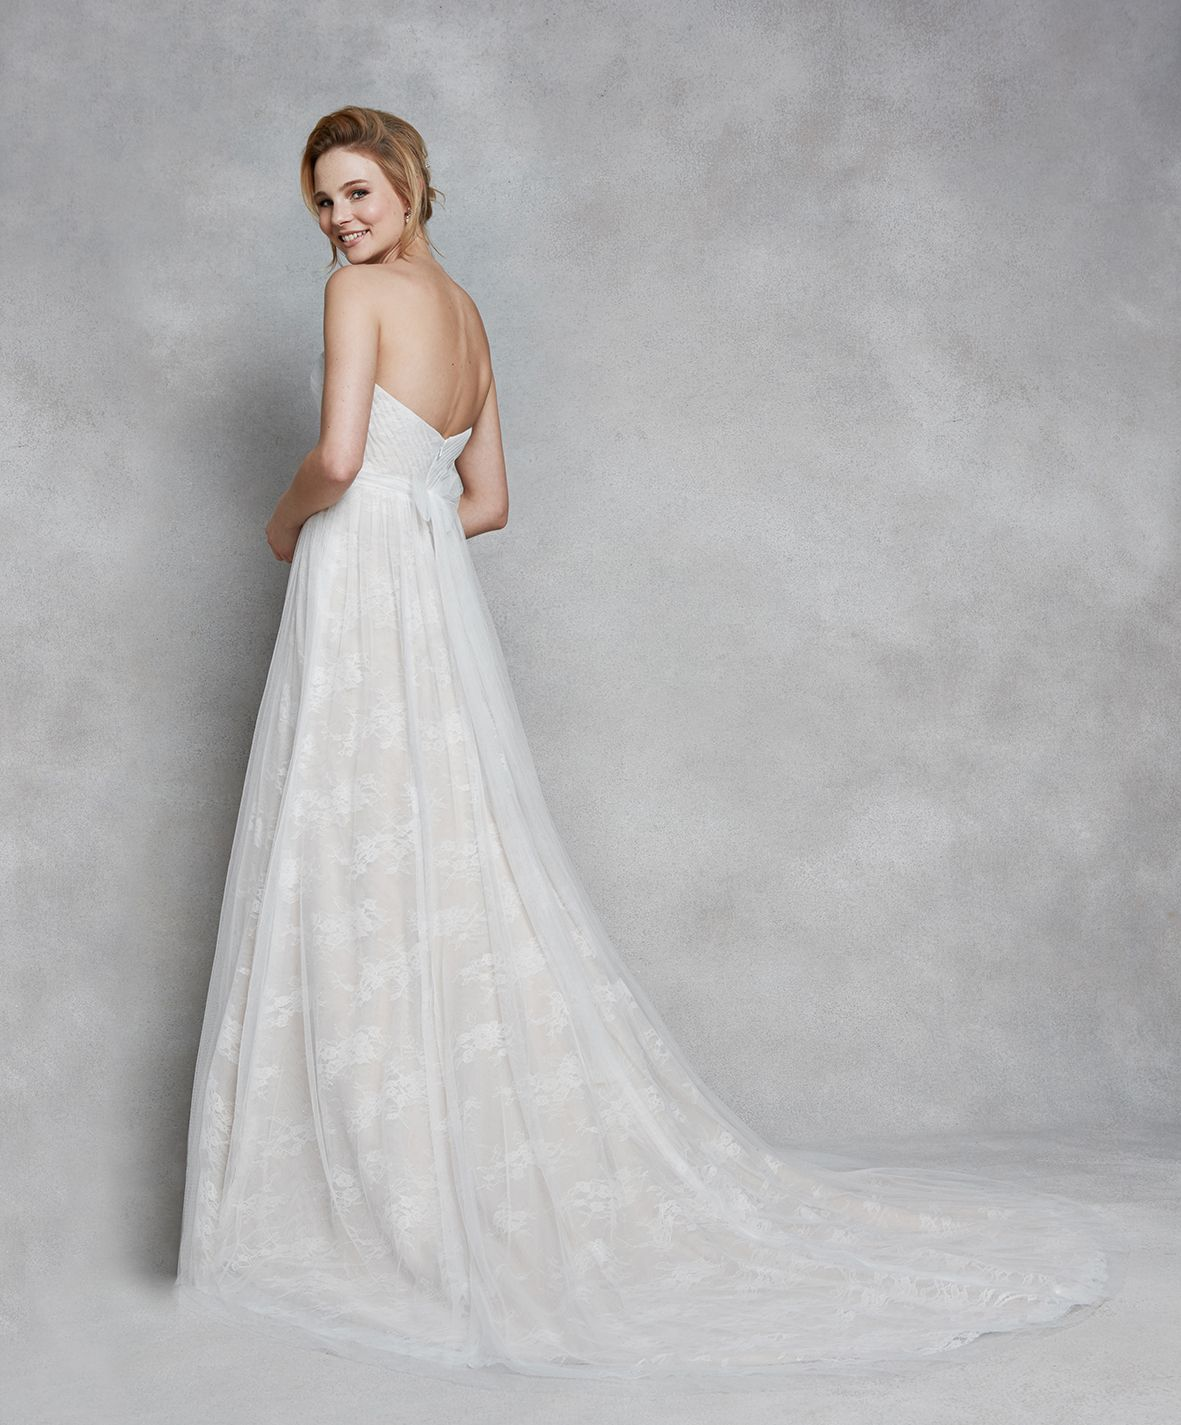 Cairou this enchanting strapless gown blends dainty chantilly lace